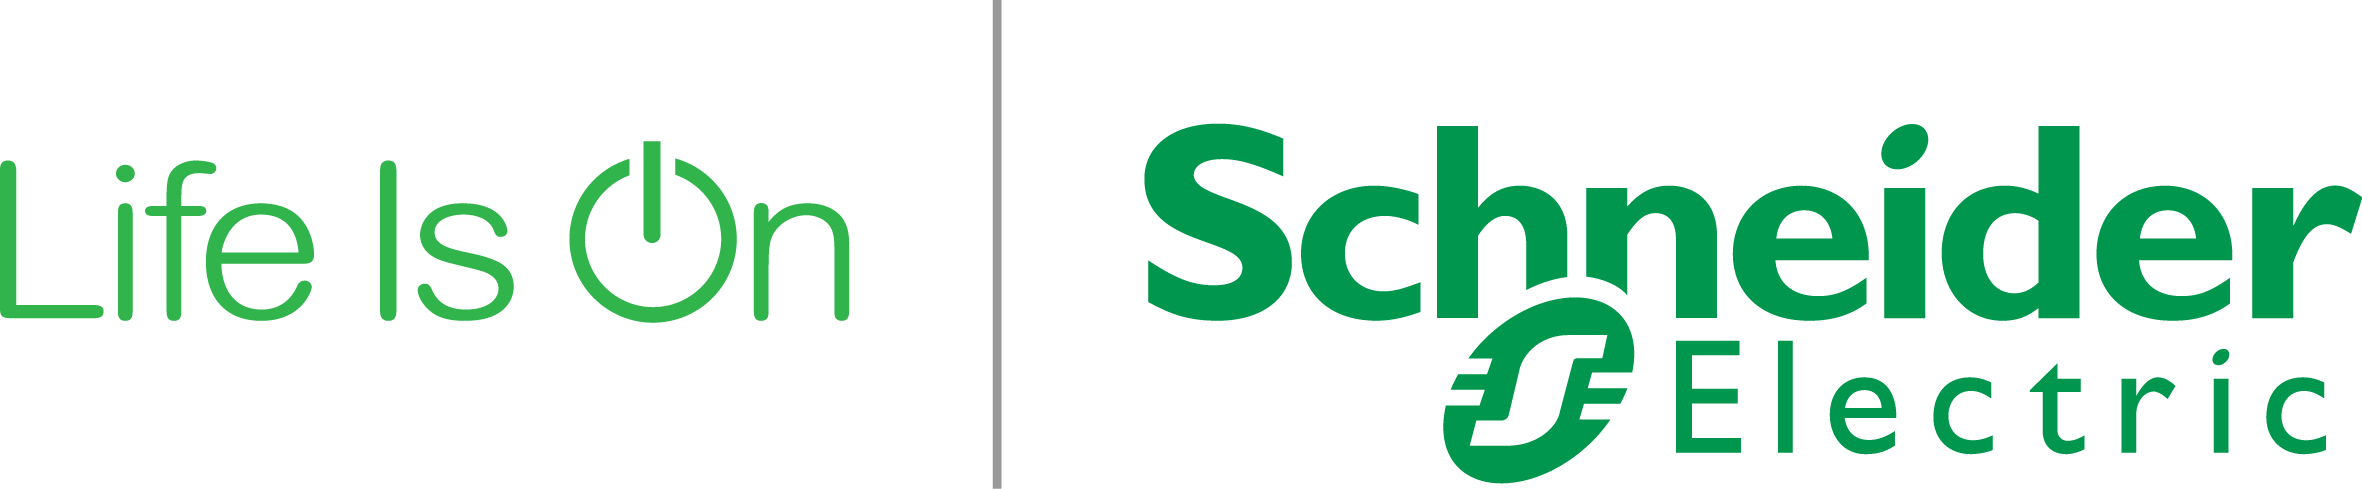 Life is On — Schneider Electric